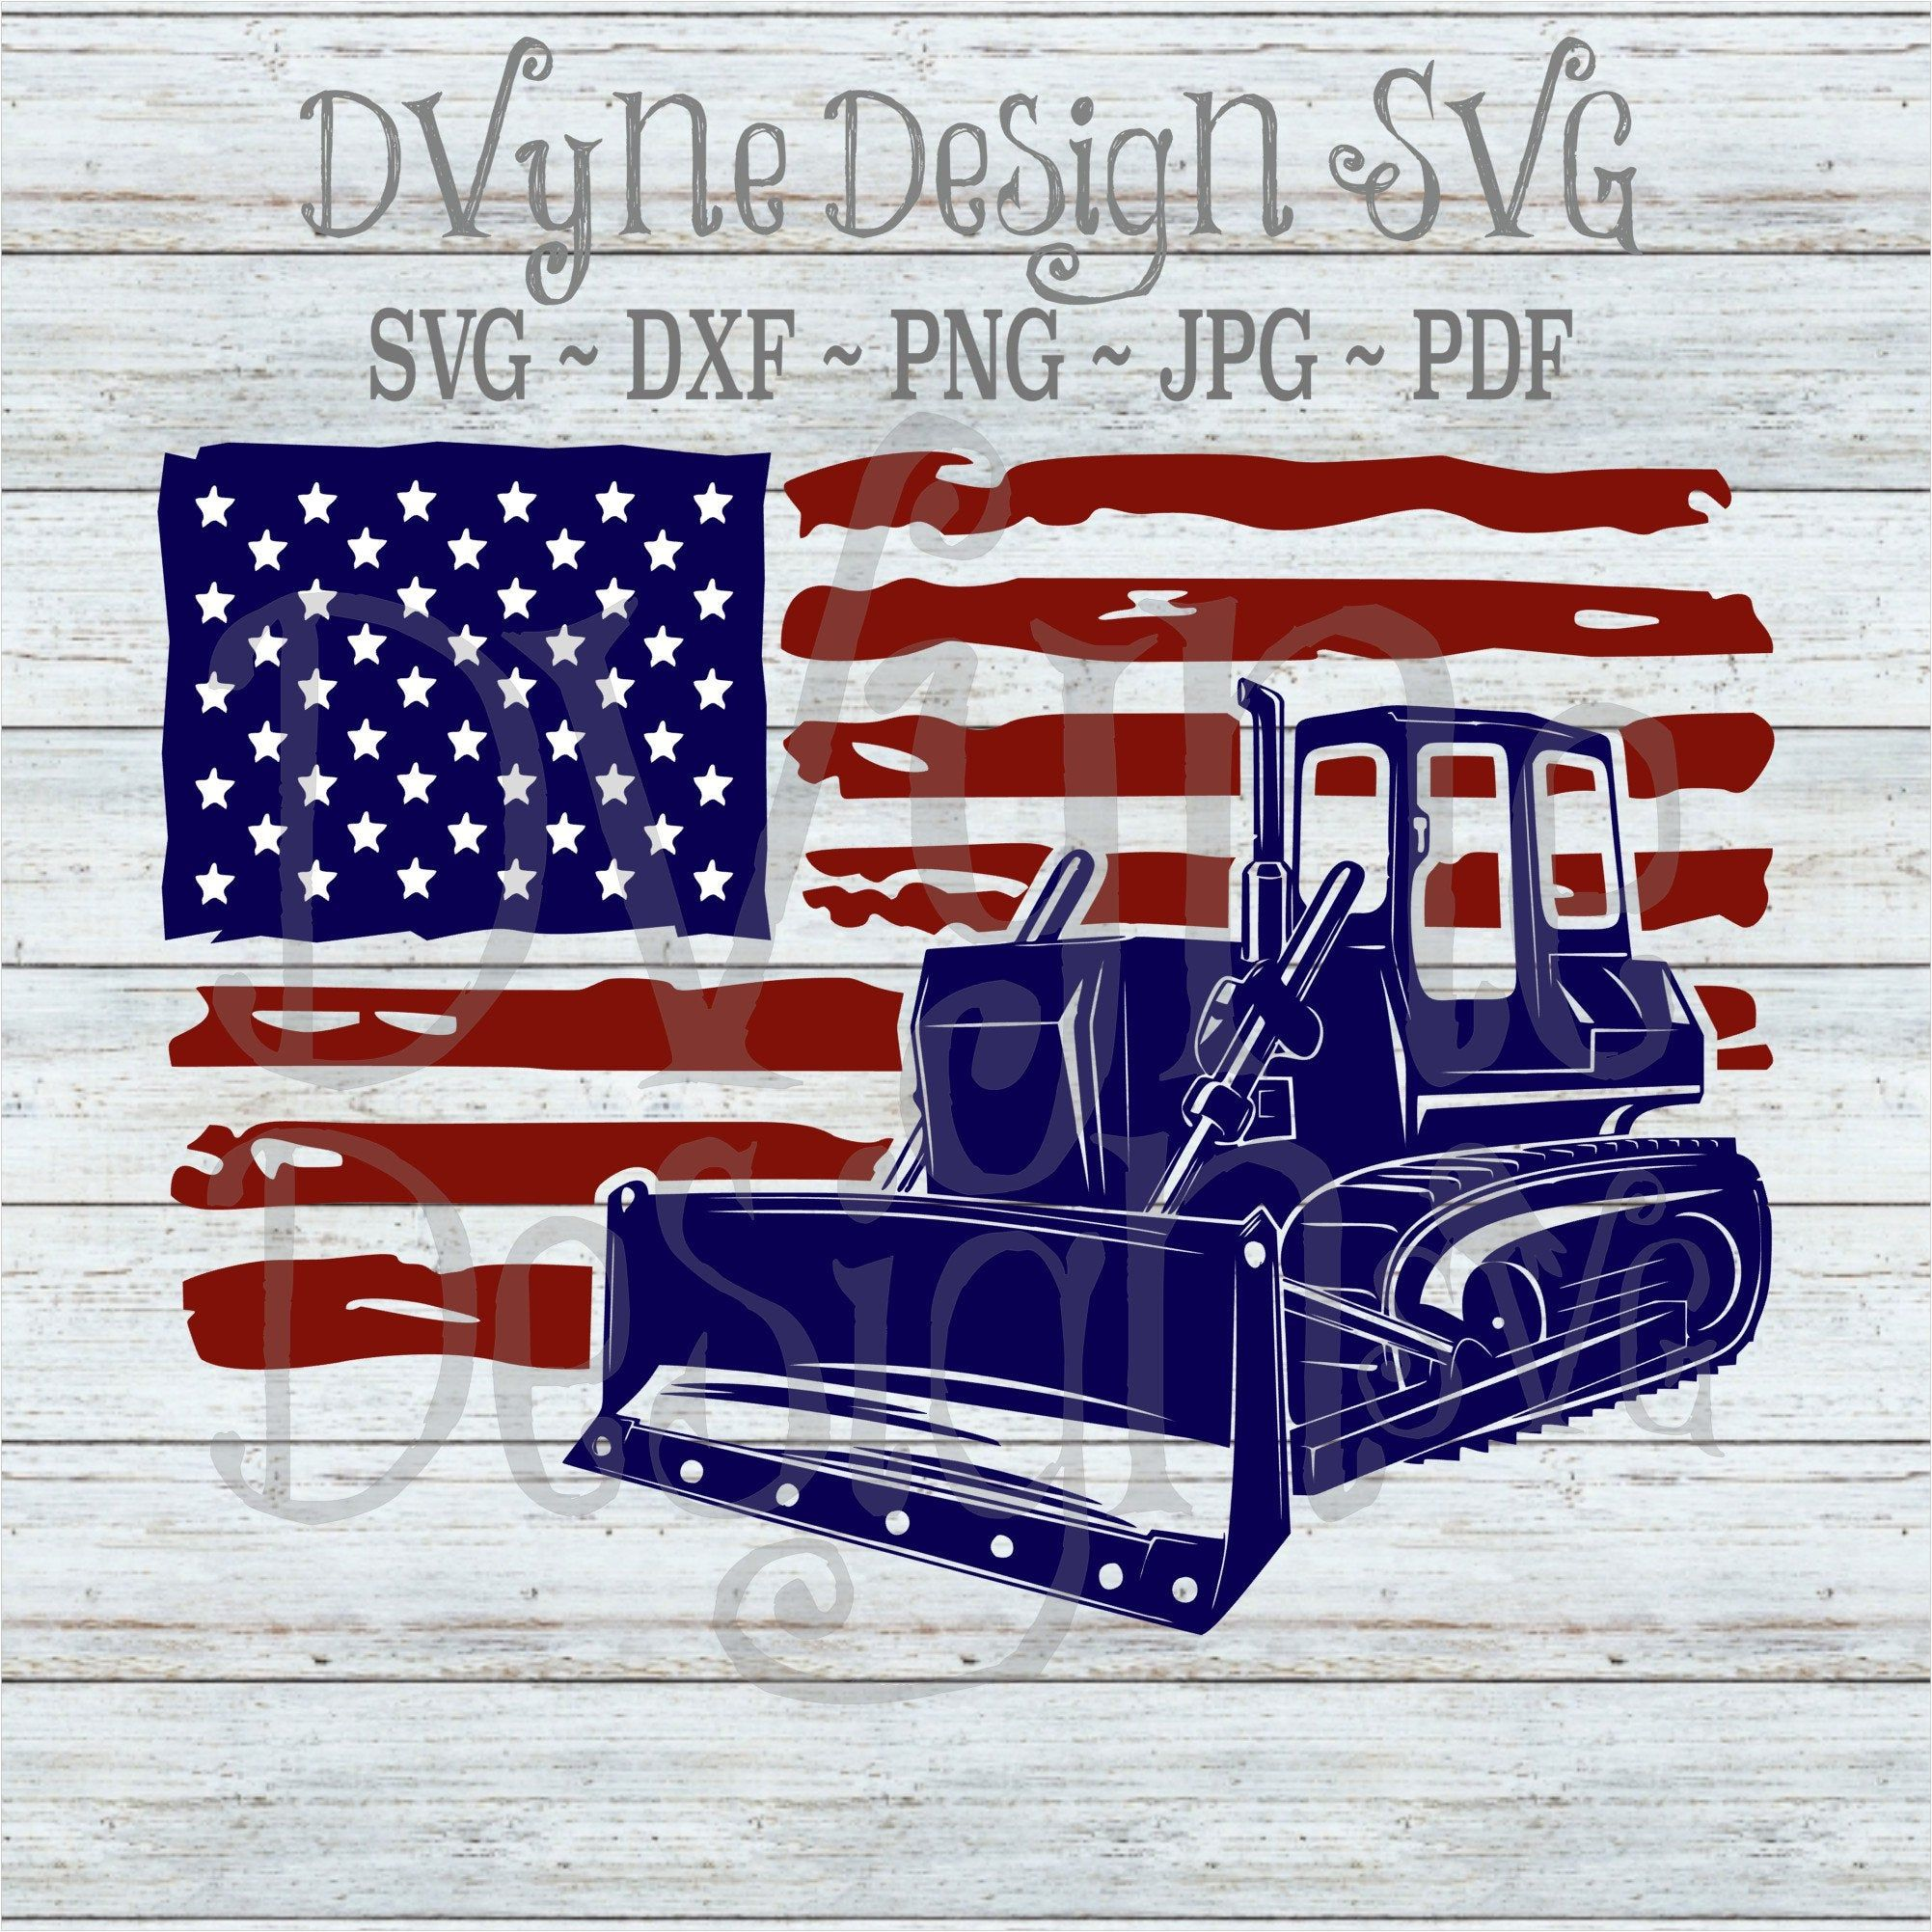 Pin on DVyne Design SVG